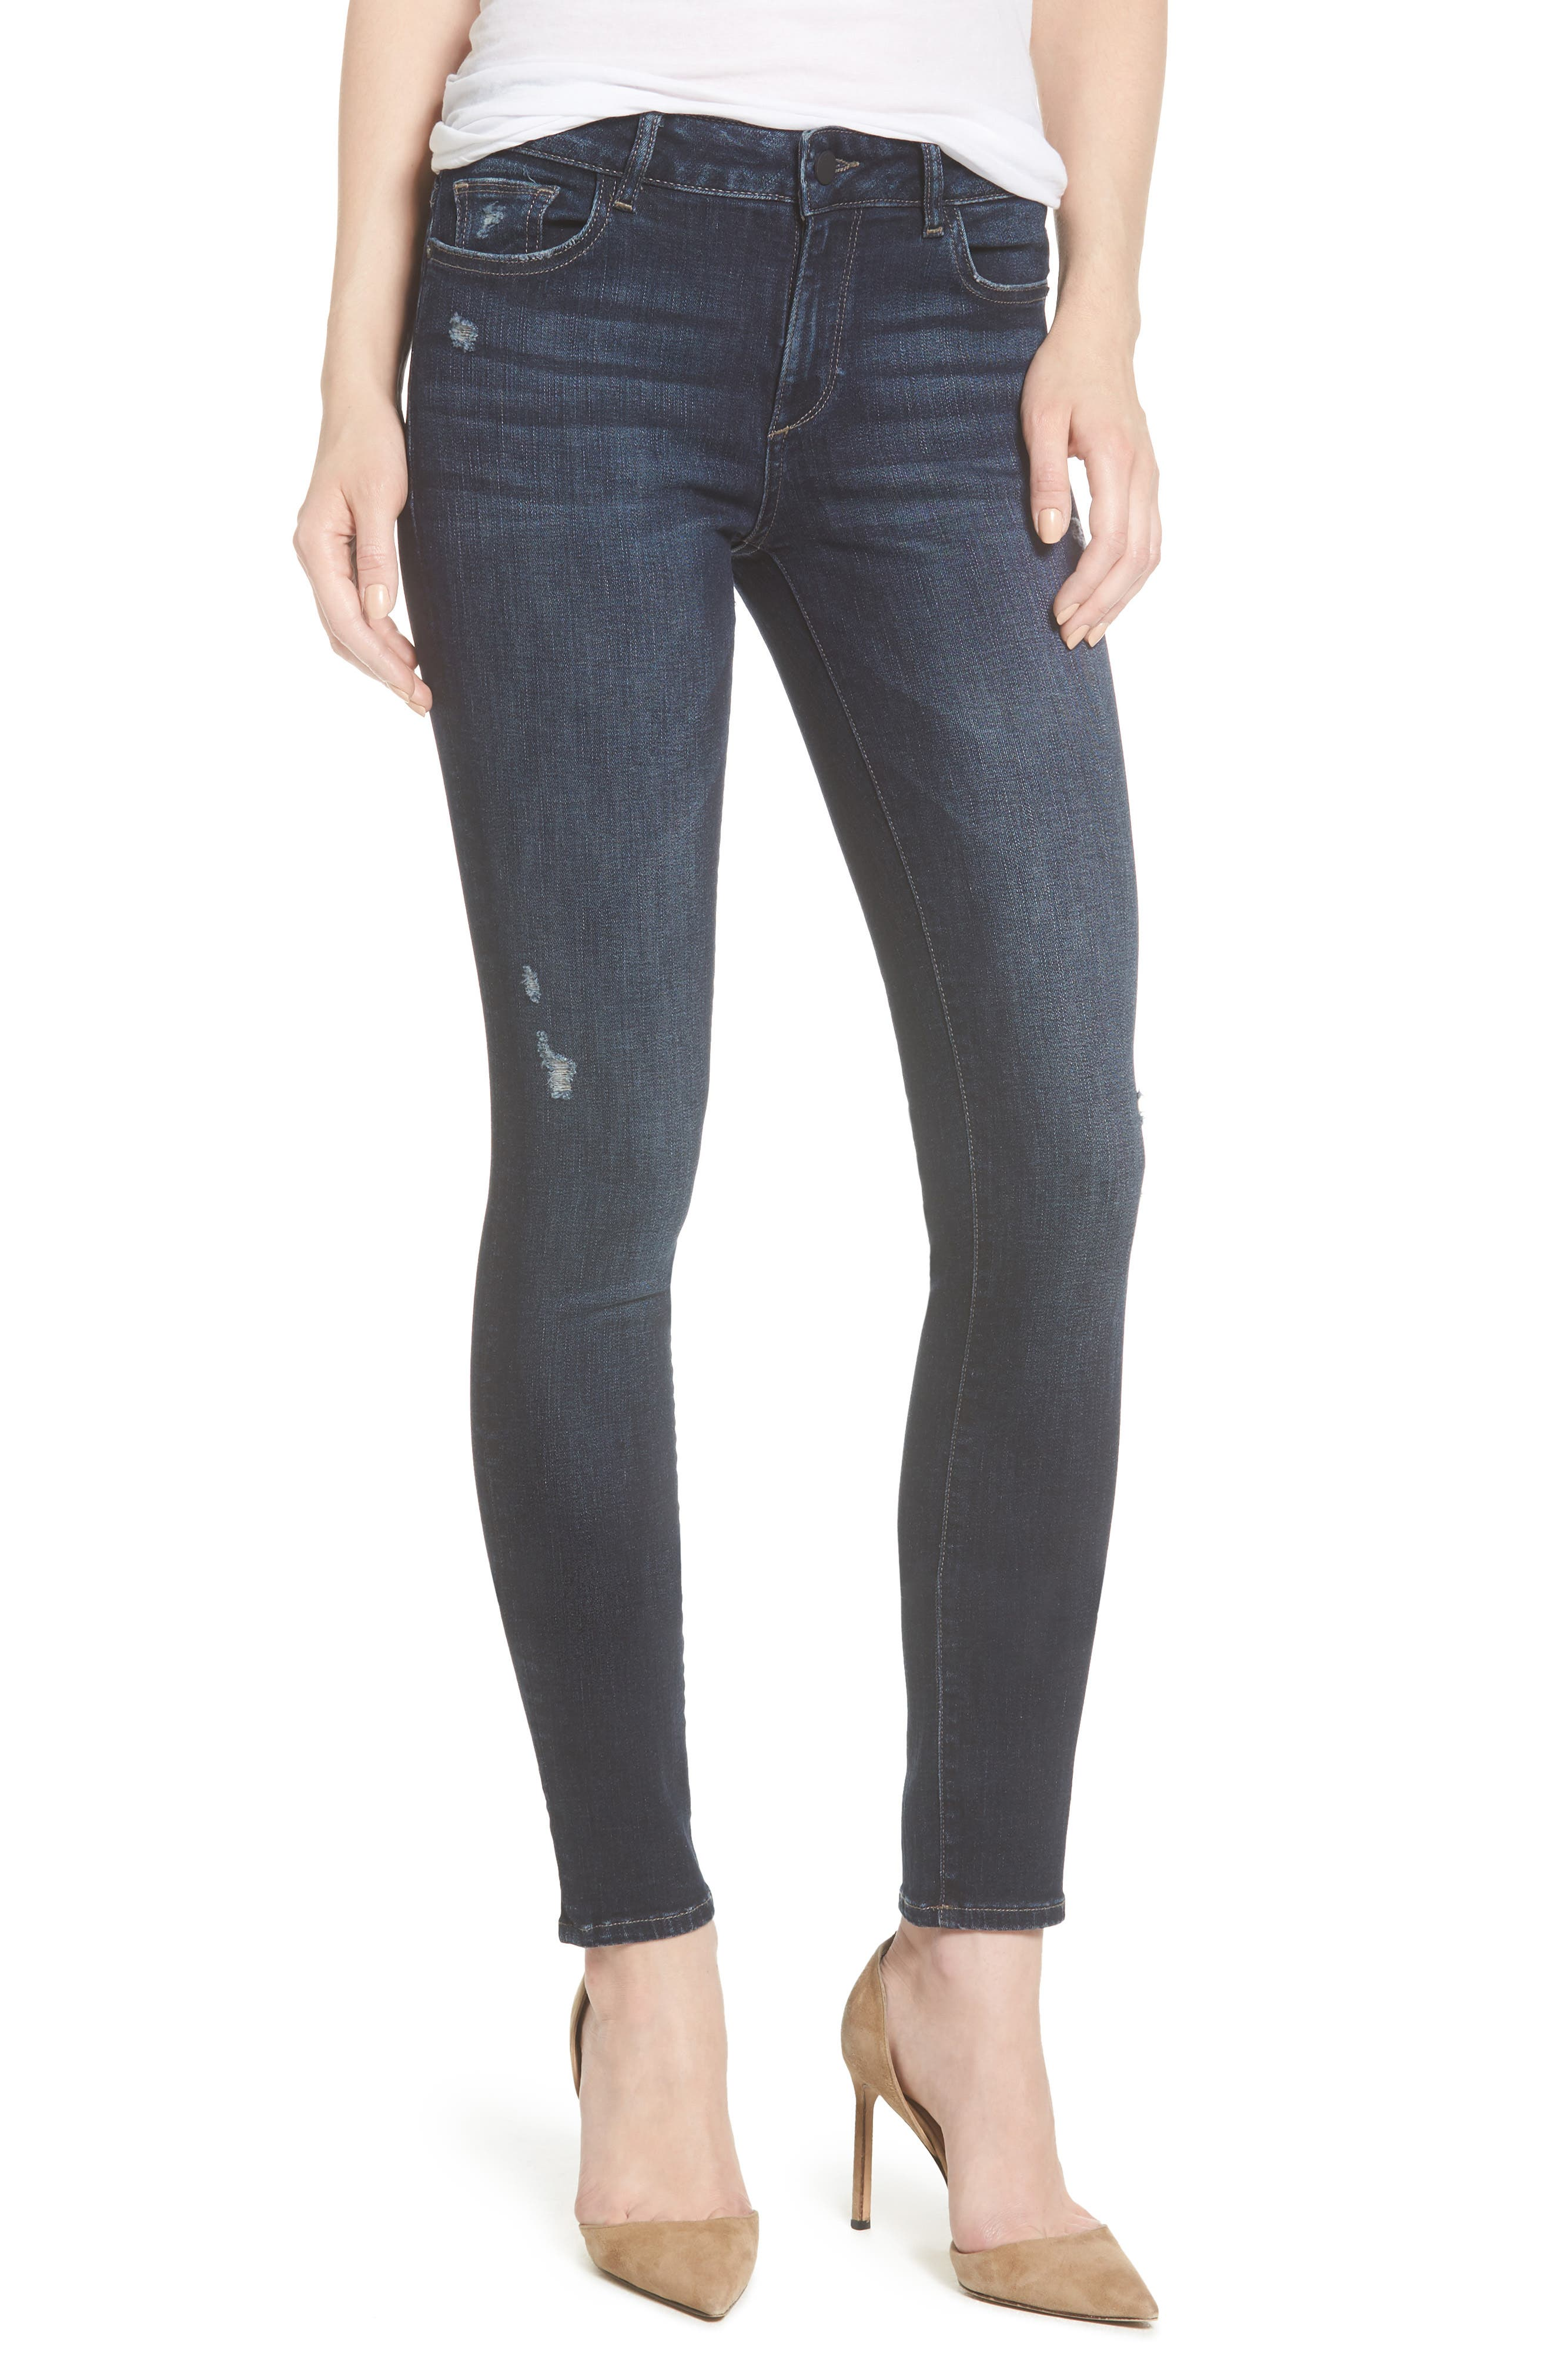 Alternate Image 1 Selected - DL1961 Florence Instasculpt Skinny Jeans (Darcy)